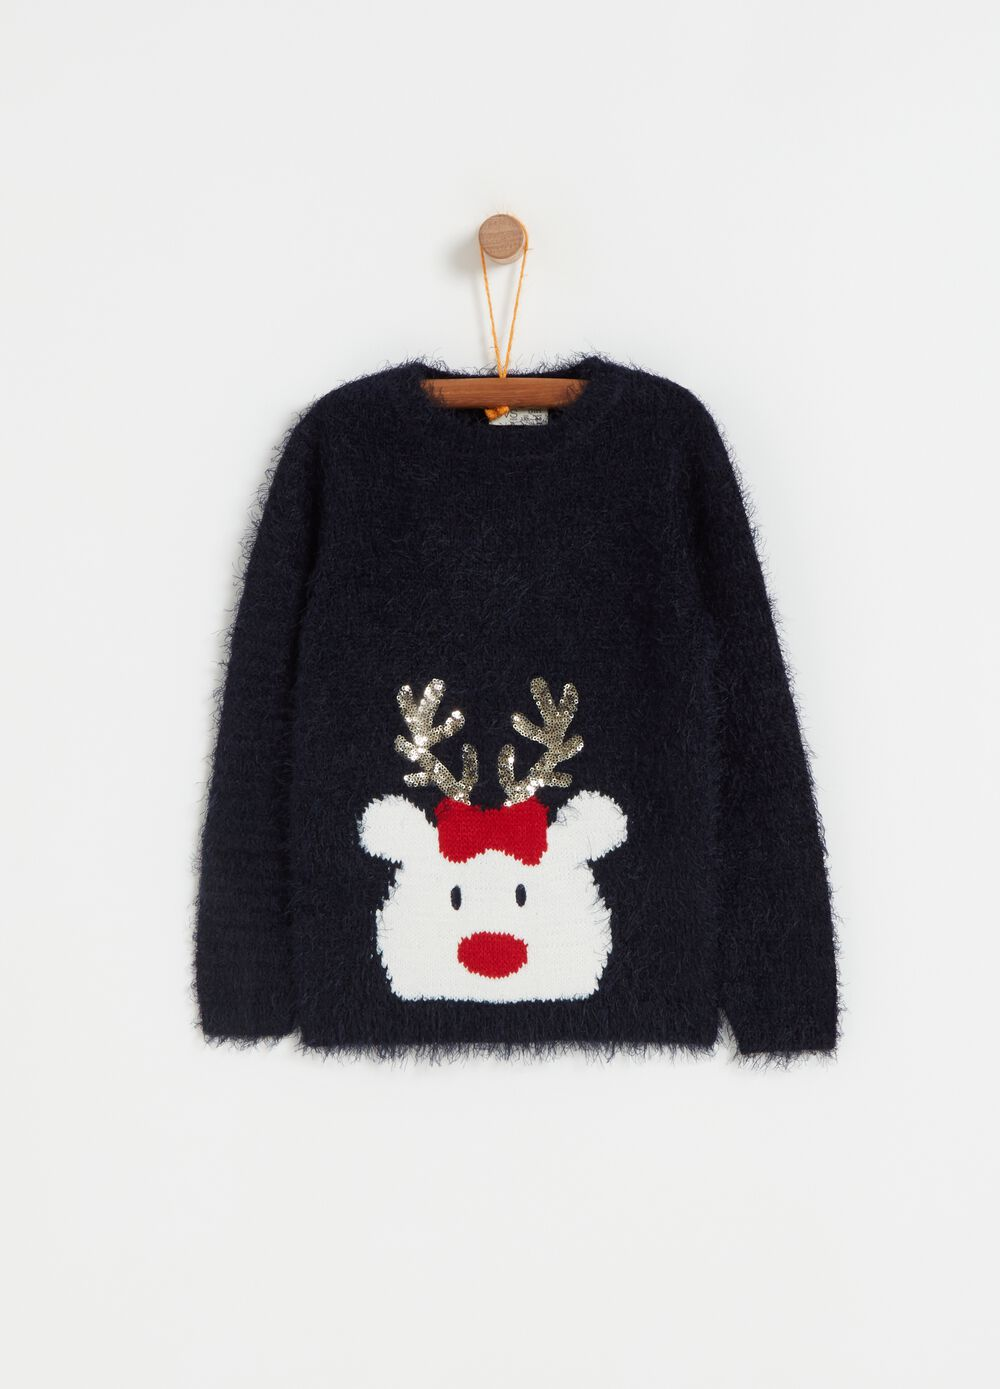 Oversized pullover with Christmas reindeer embroidery